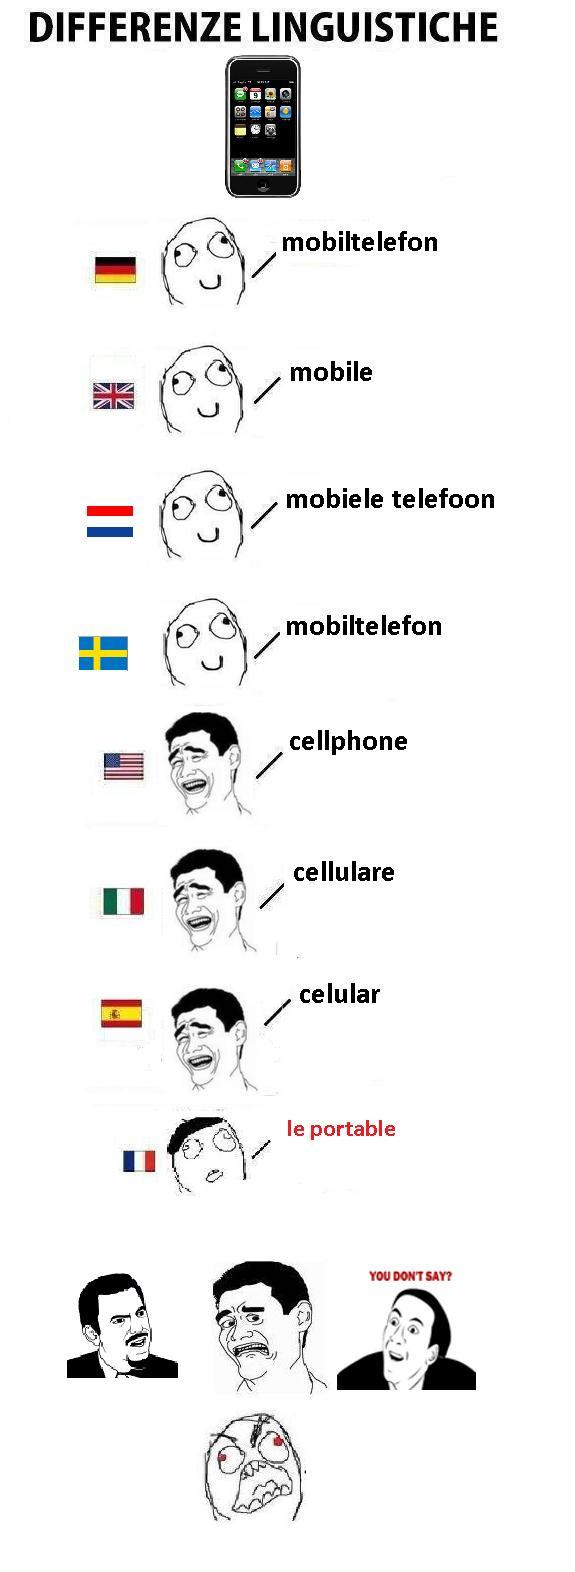 cellular phone/mobile phone